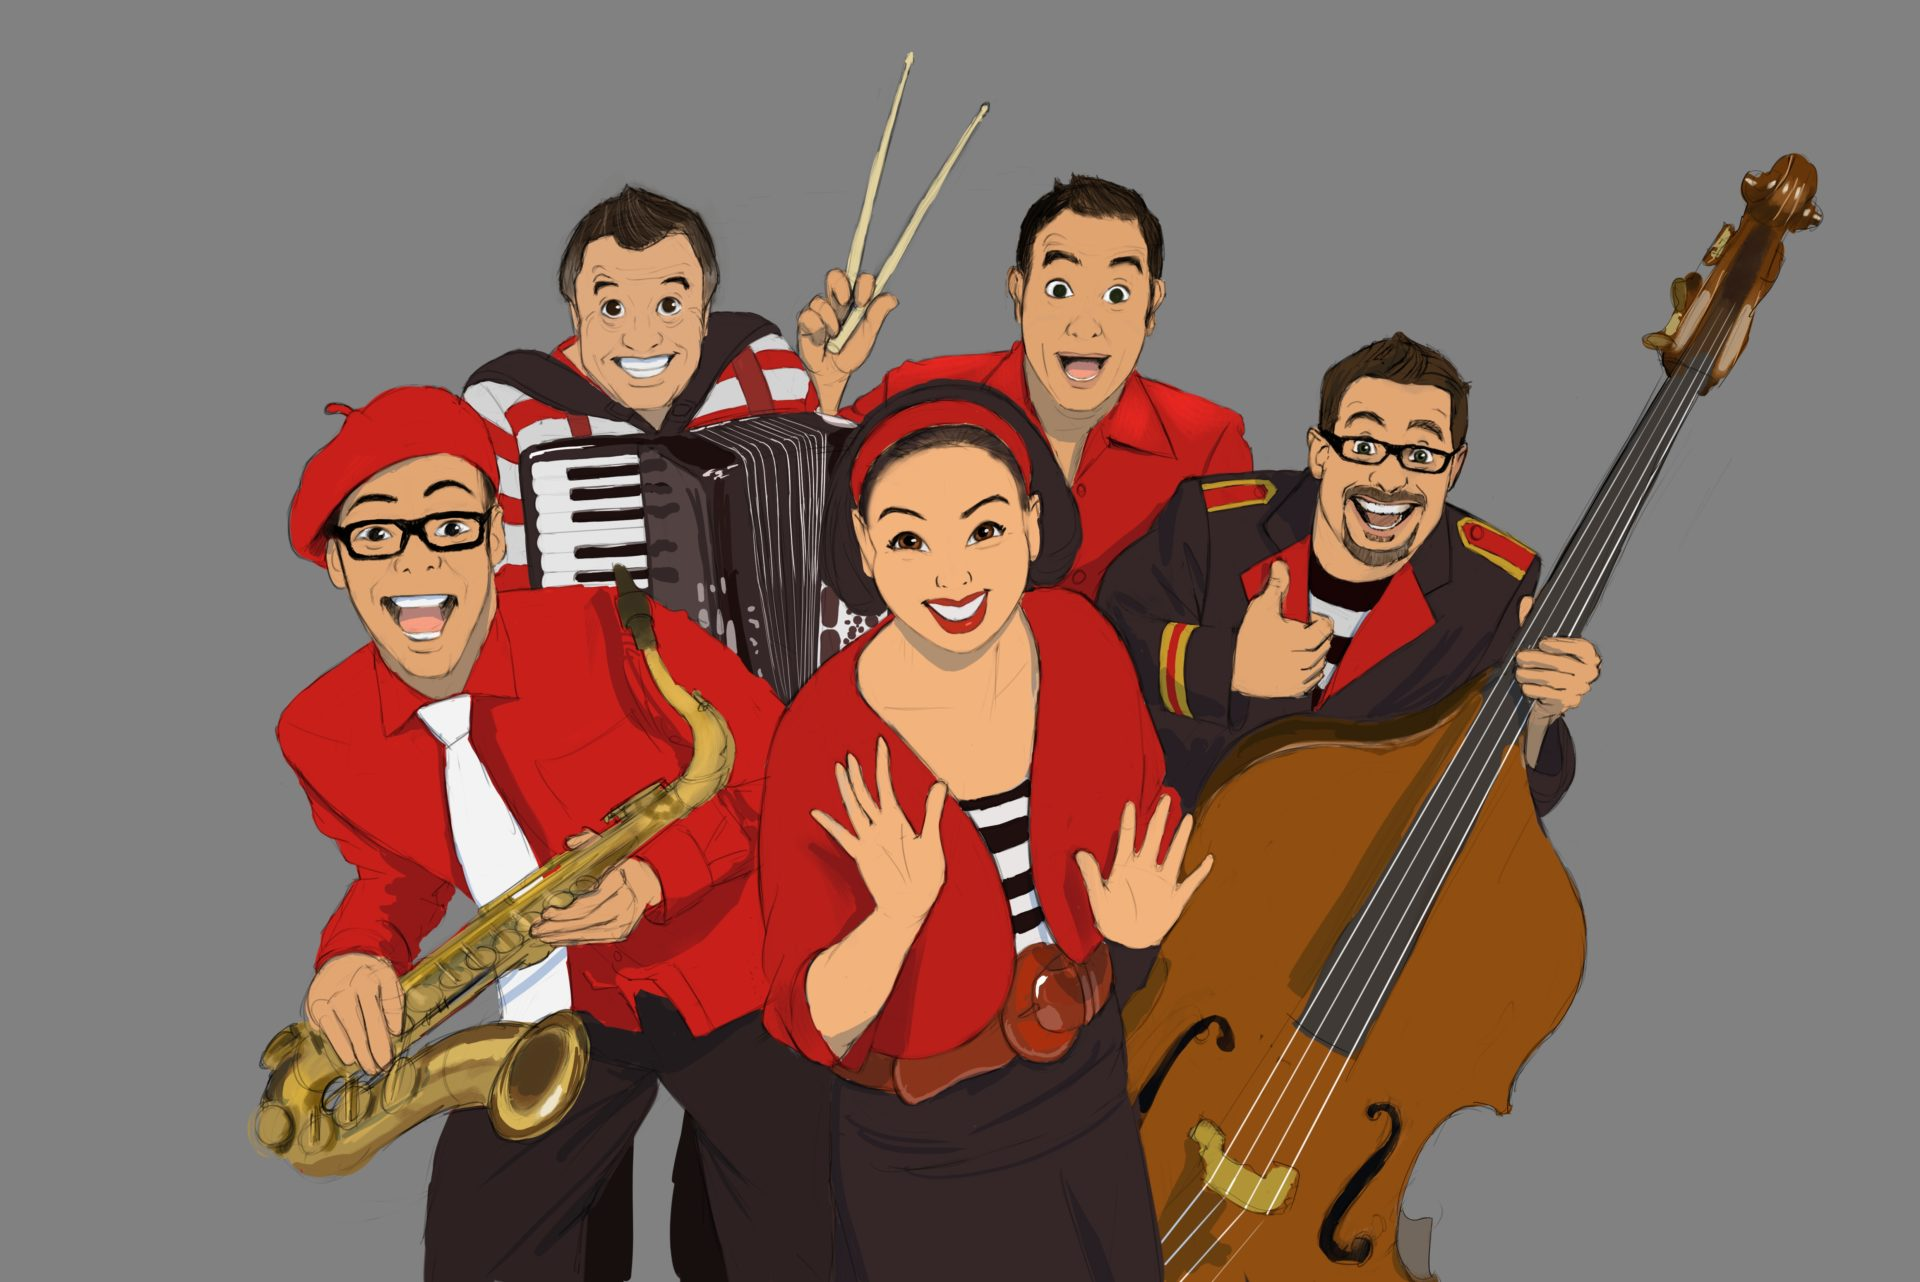 Illustration work for Lah-Lah children's music band.